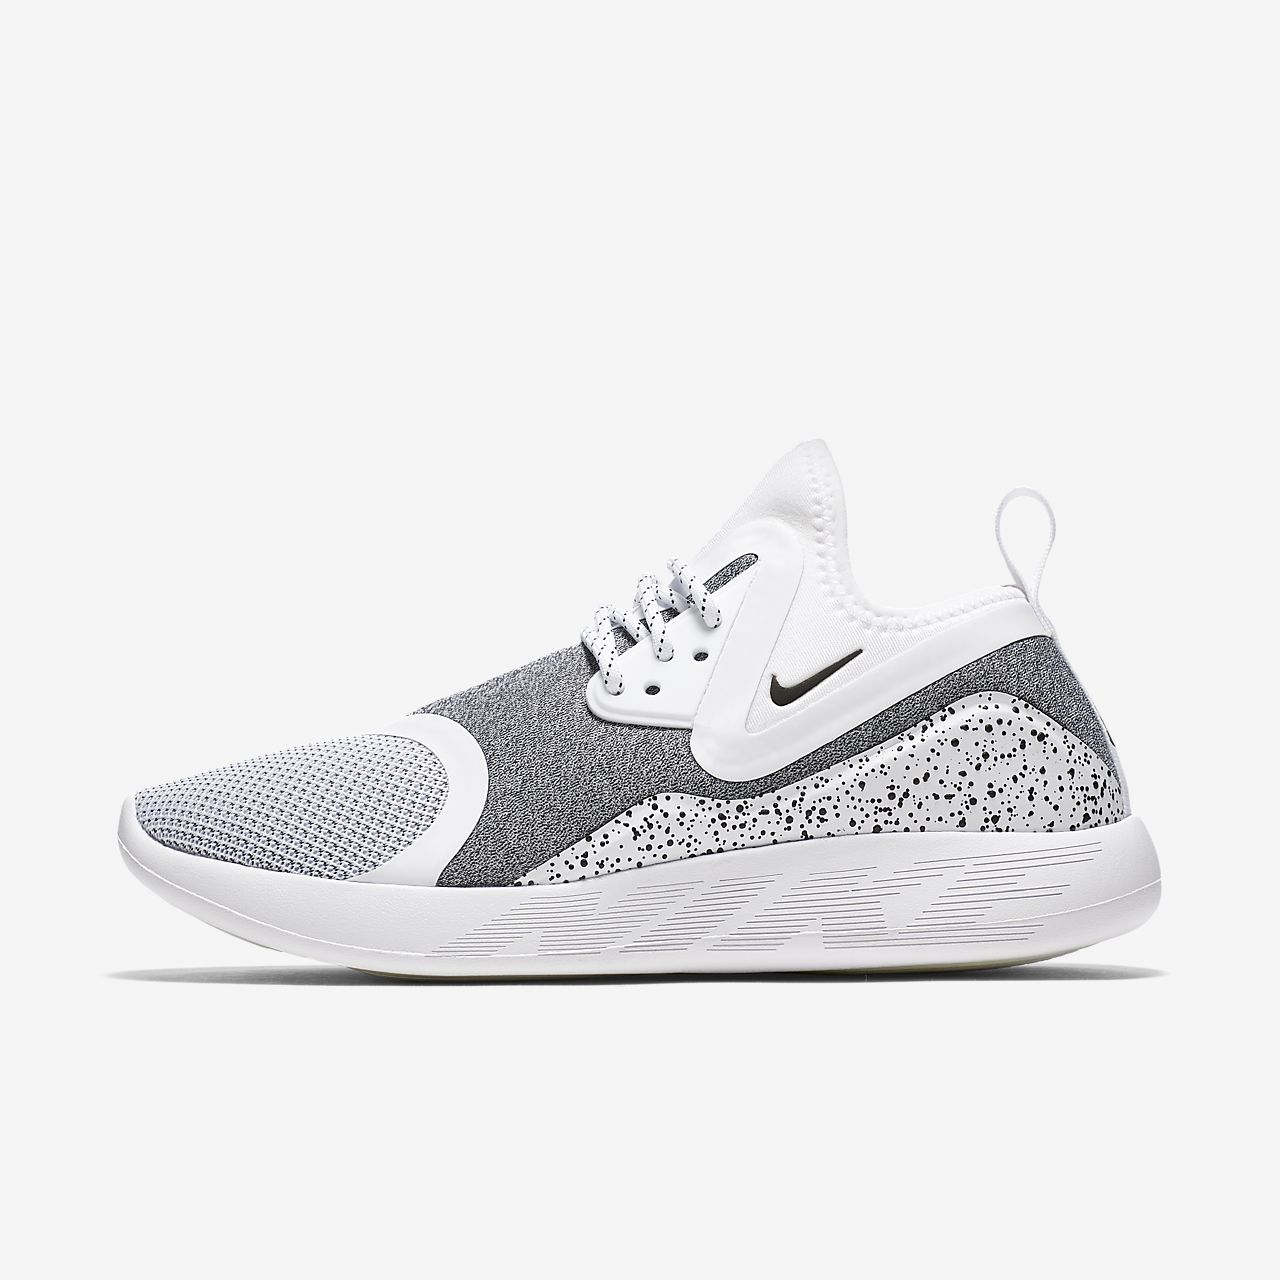 Women's Nike Lunarlon Shoes (23)